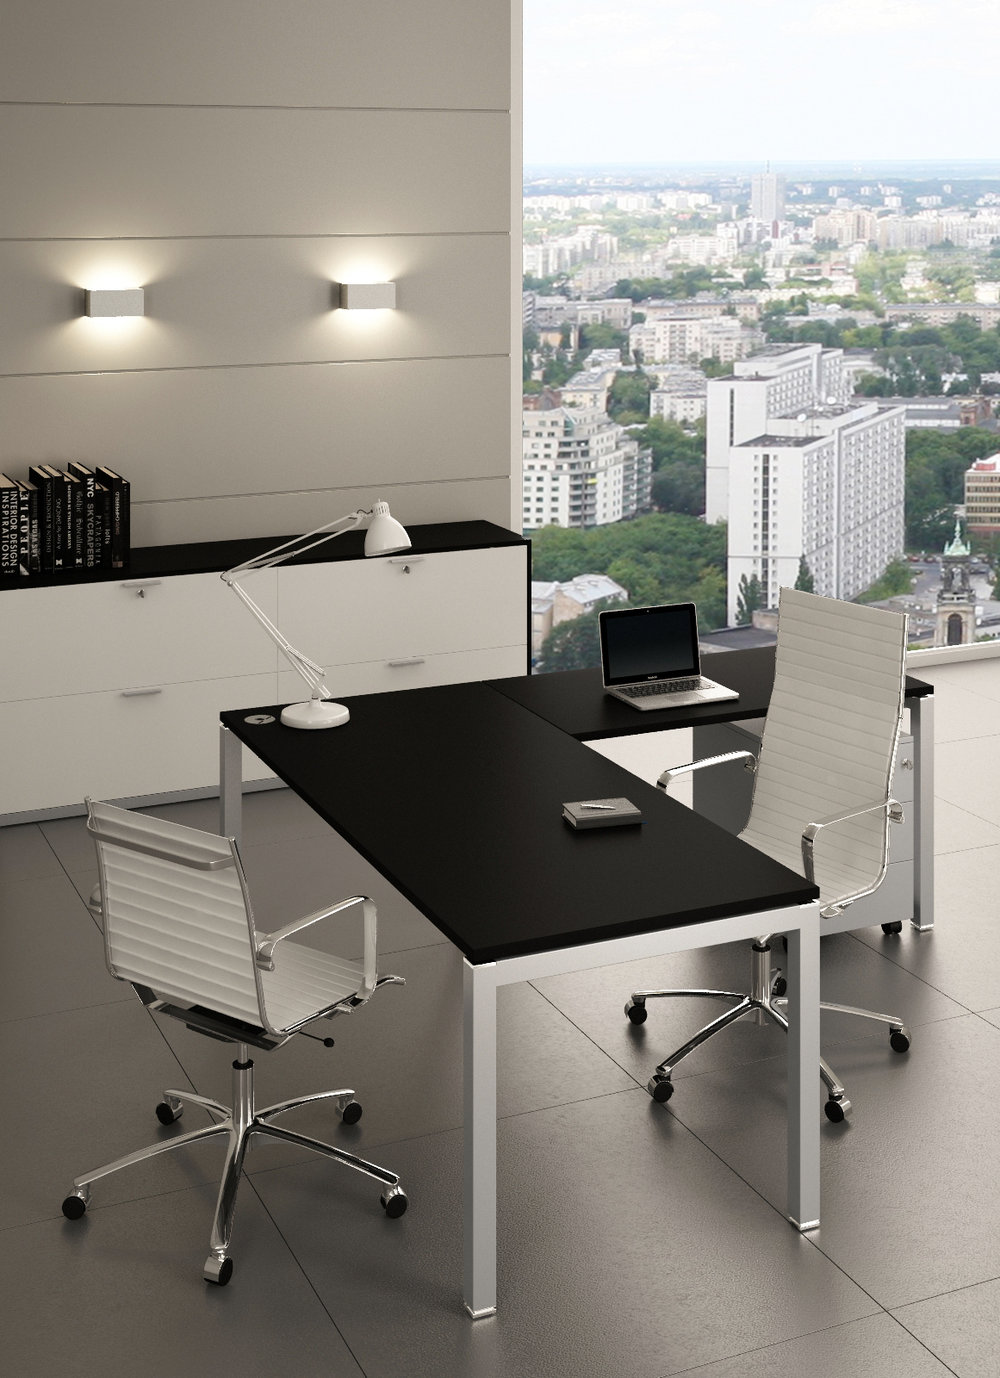 Italy for less. - GATE is our best priced Italian line. It offers an array of linear extendible islands and workstations that can be joined together to create efficient, practical and contemporary offices so you can come together when you need to.Starting at $799*